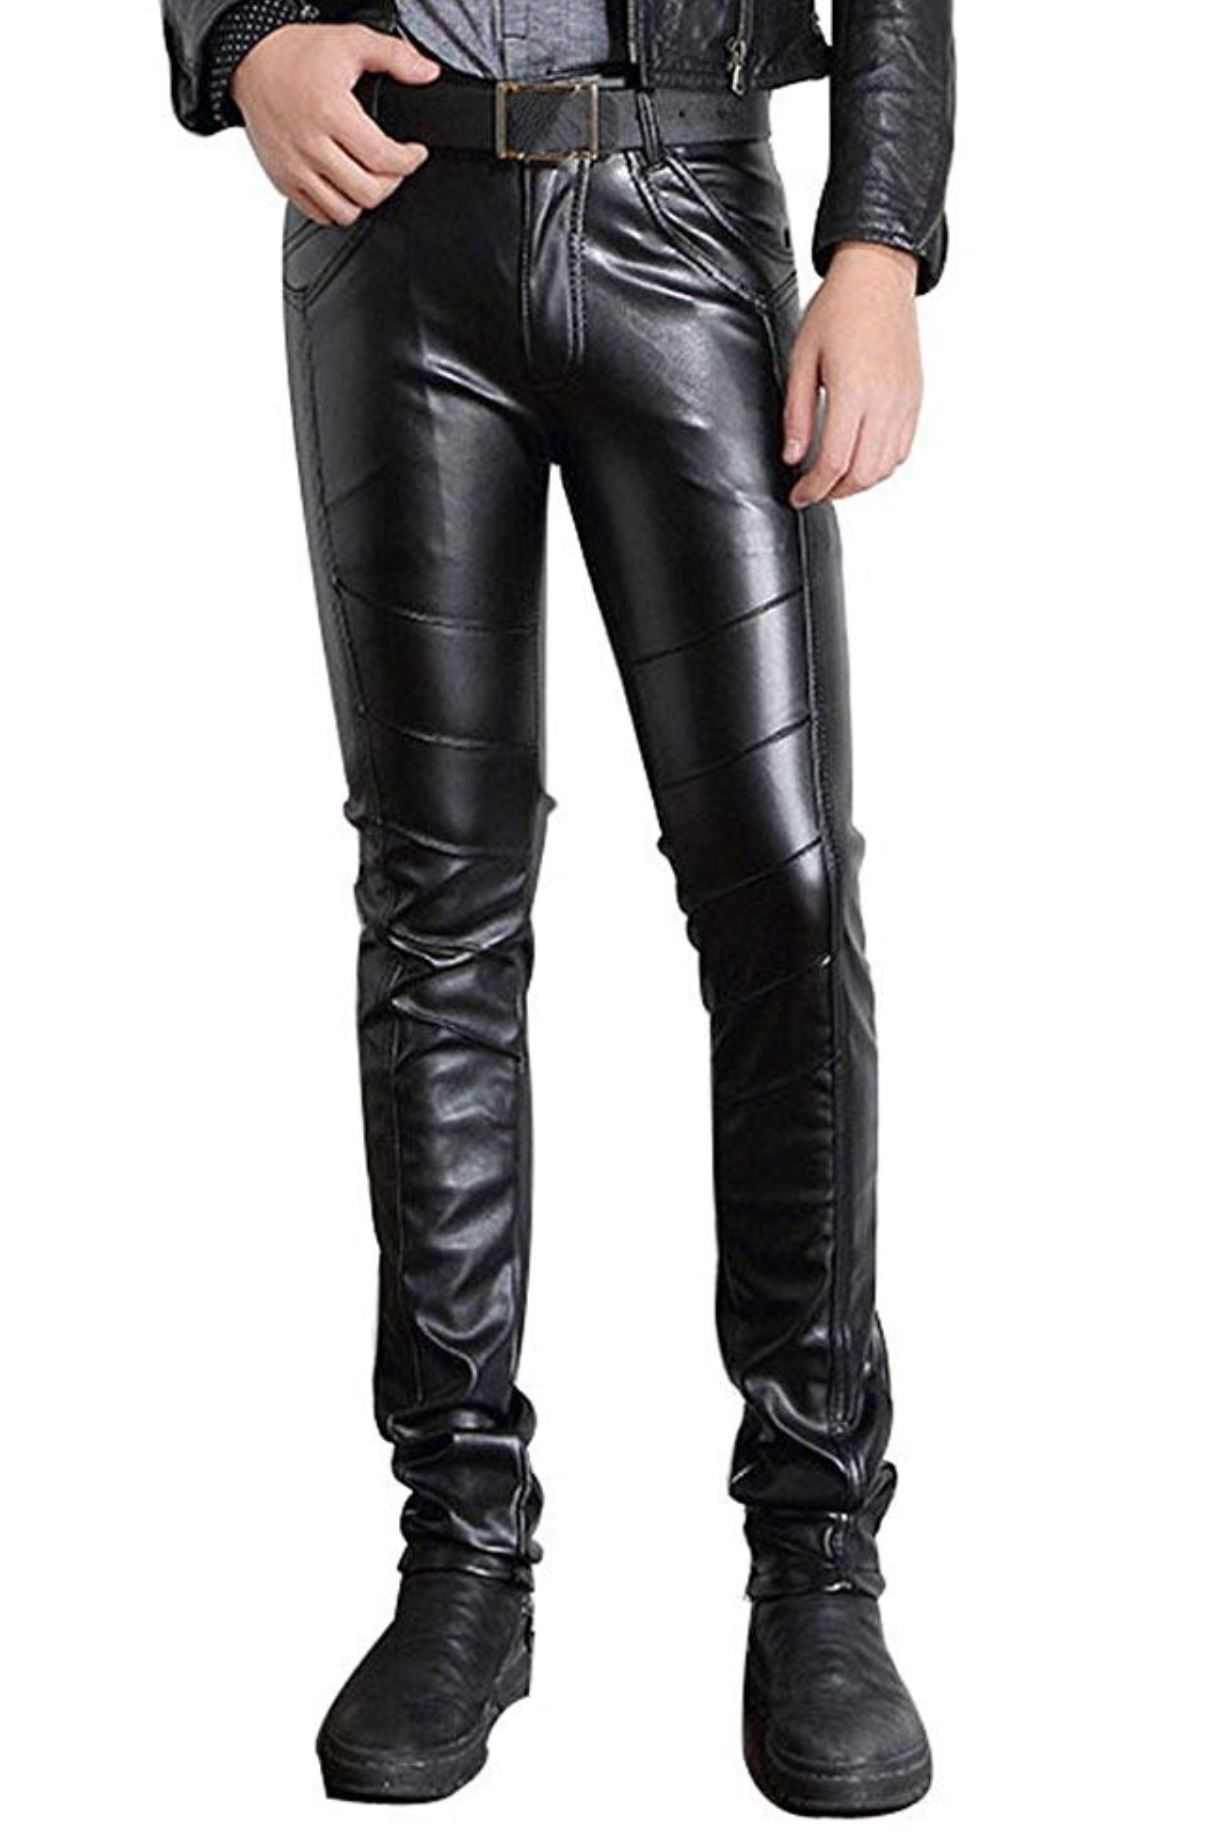 Leather Pants from amazon.com